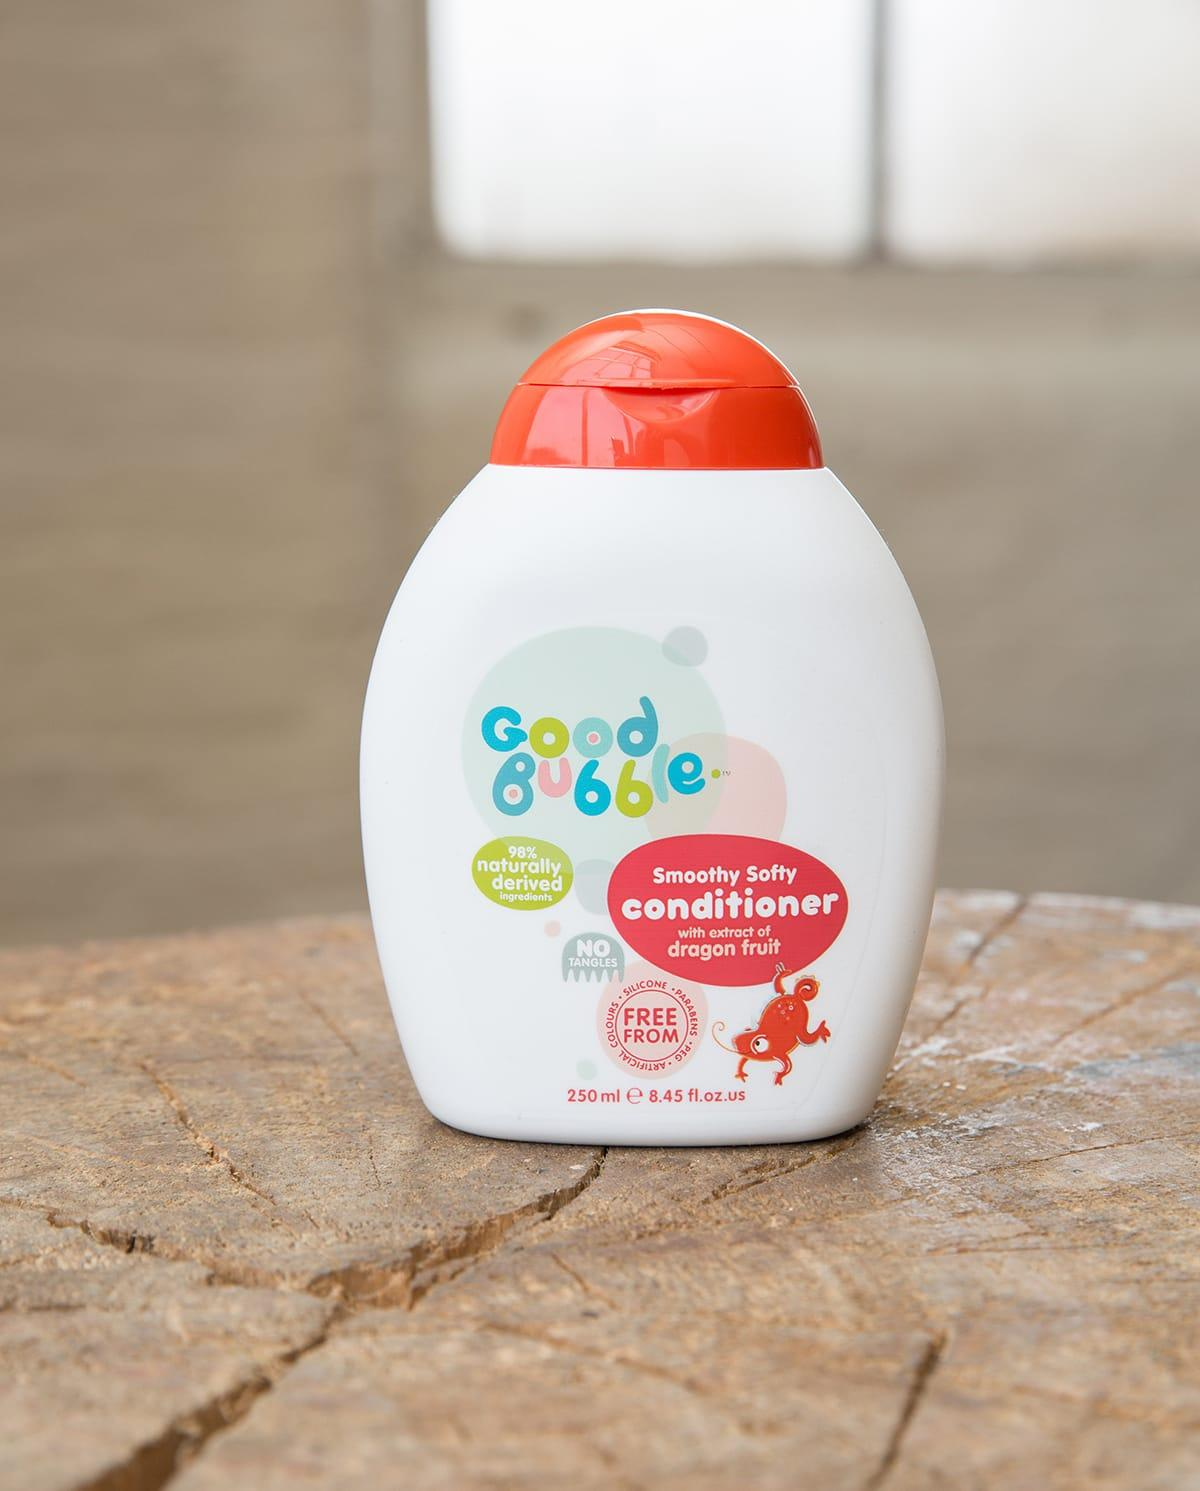 Smoothy Softy Conditioner With Dragon Fruit Extract Lifestyle